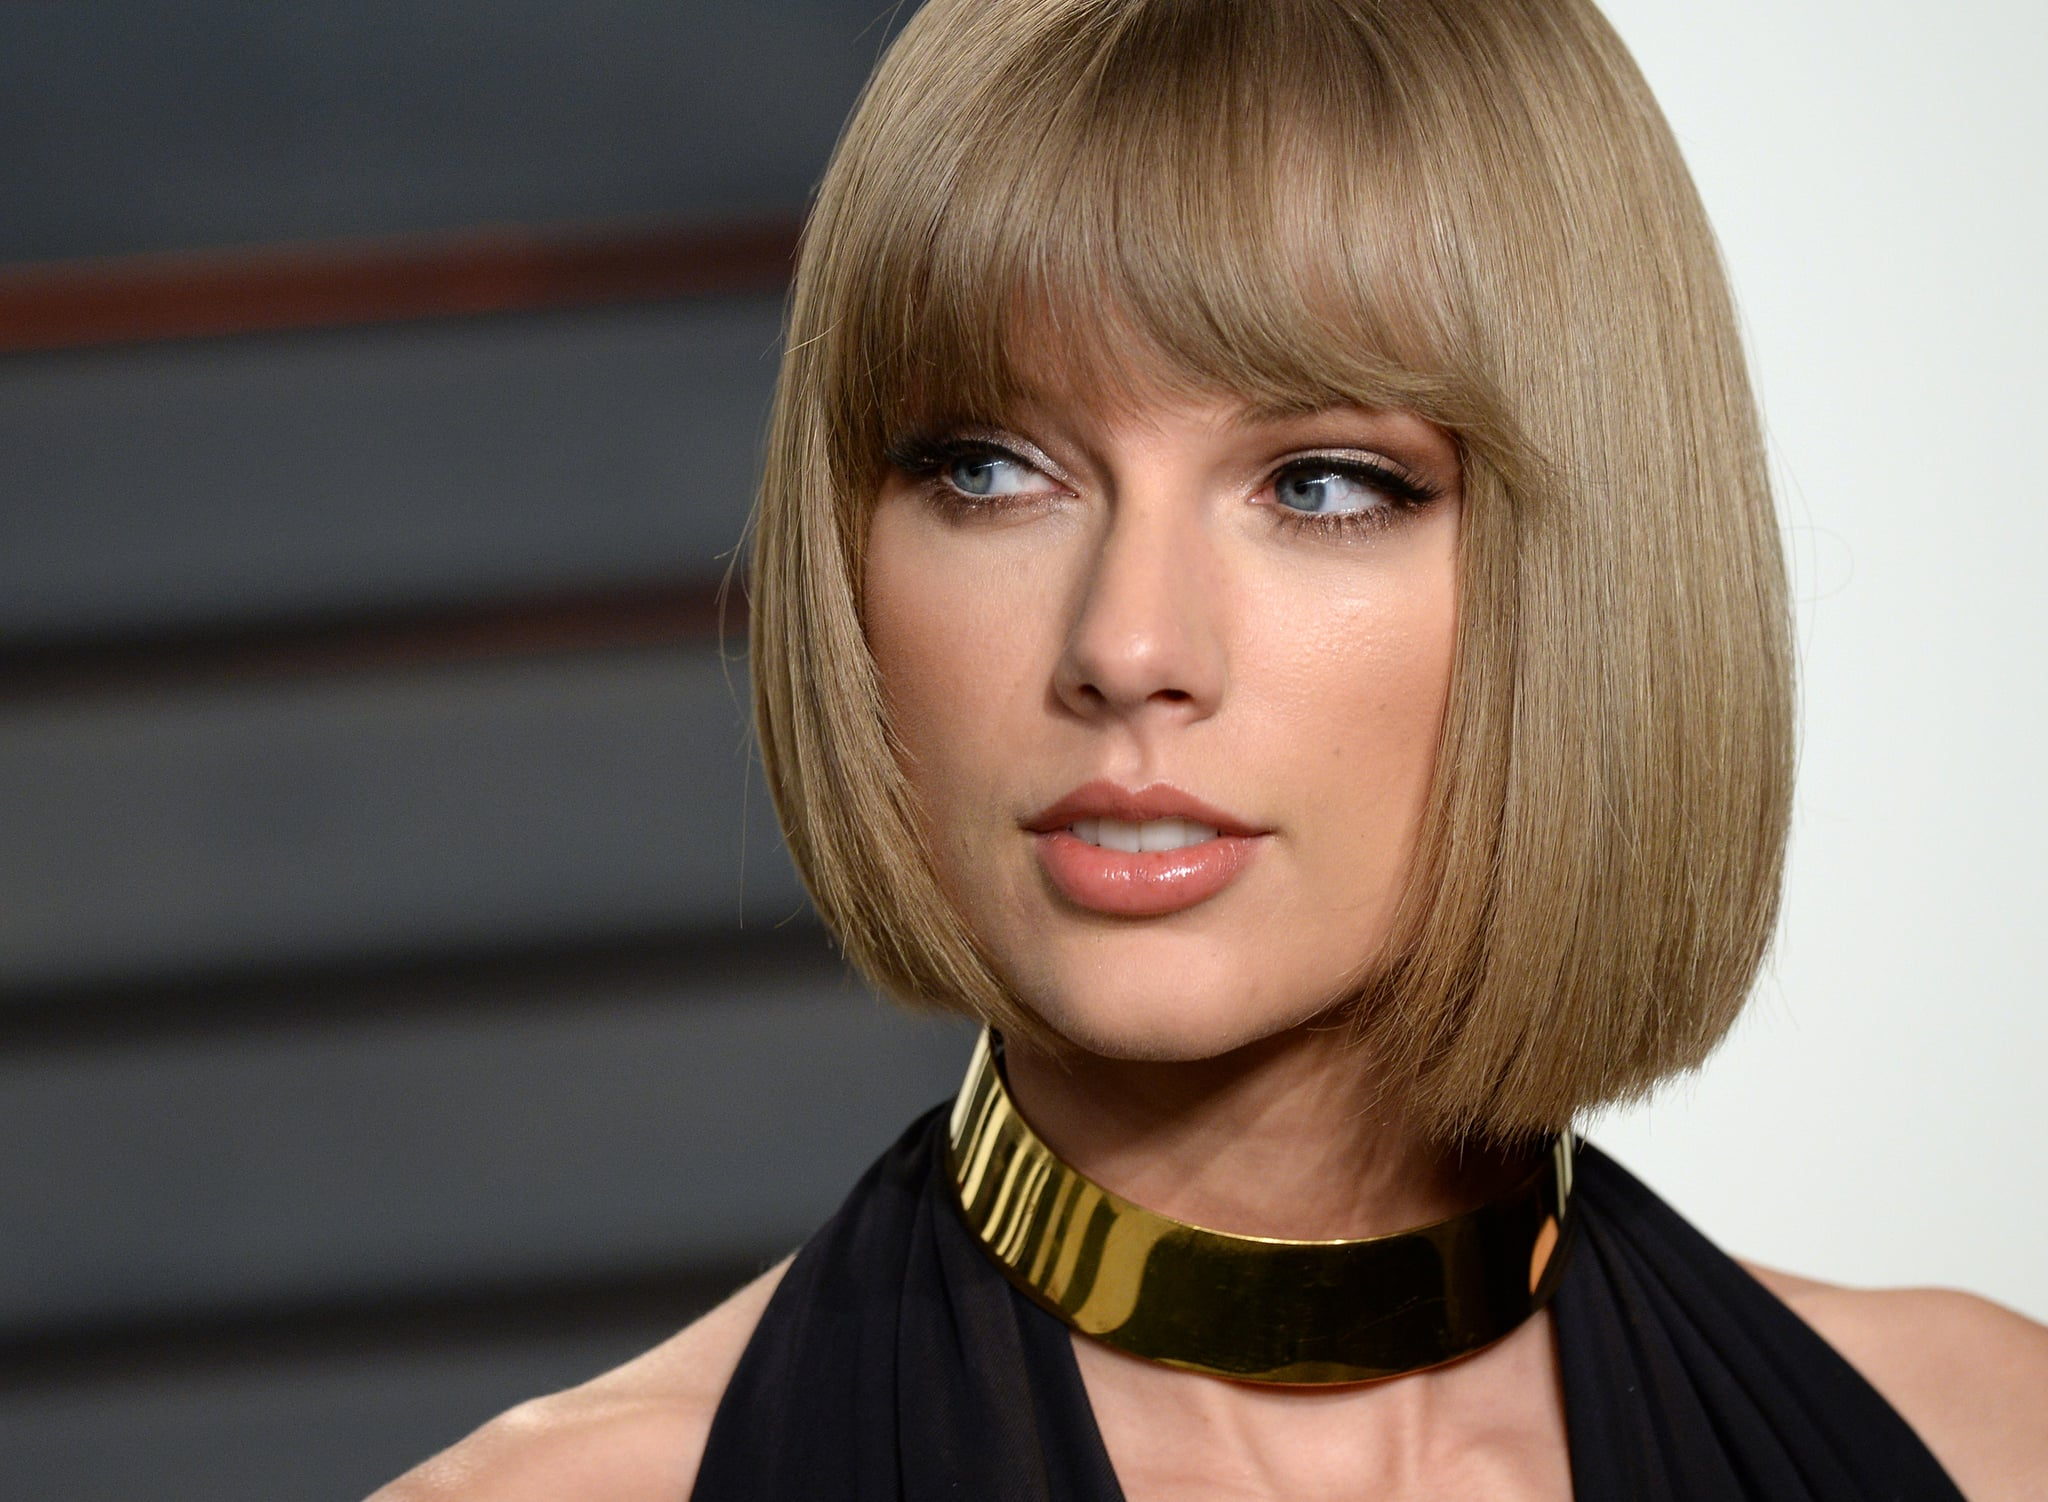 Taylor Swift Celebrates Sales Landmarks by Offering Catalog for Streaming